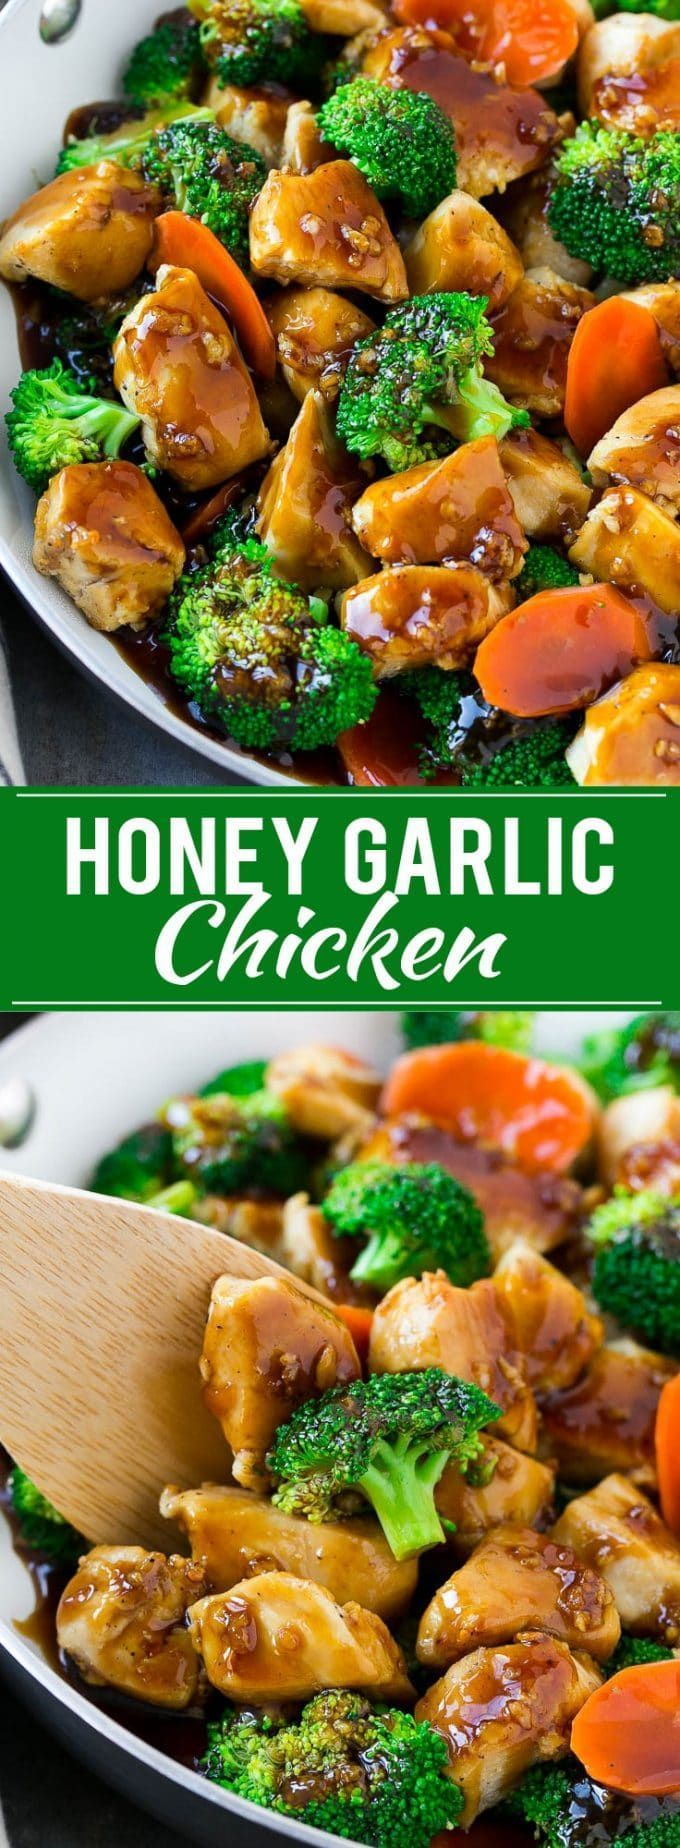 HONEY GARLIC CHICKEN STIR FRY RECIPE IS FULL OF CHICKEN AND VEGGIES, ALL COATED IN THE EASIEST SWEET AND SAVORY SAUCE. A HEALTHIER DINNER OPTION THAT THE WHOLE FAMILY WILL LOVE!